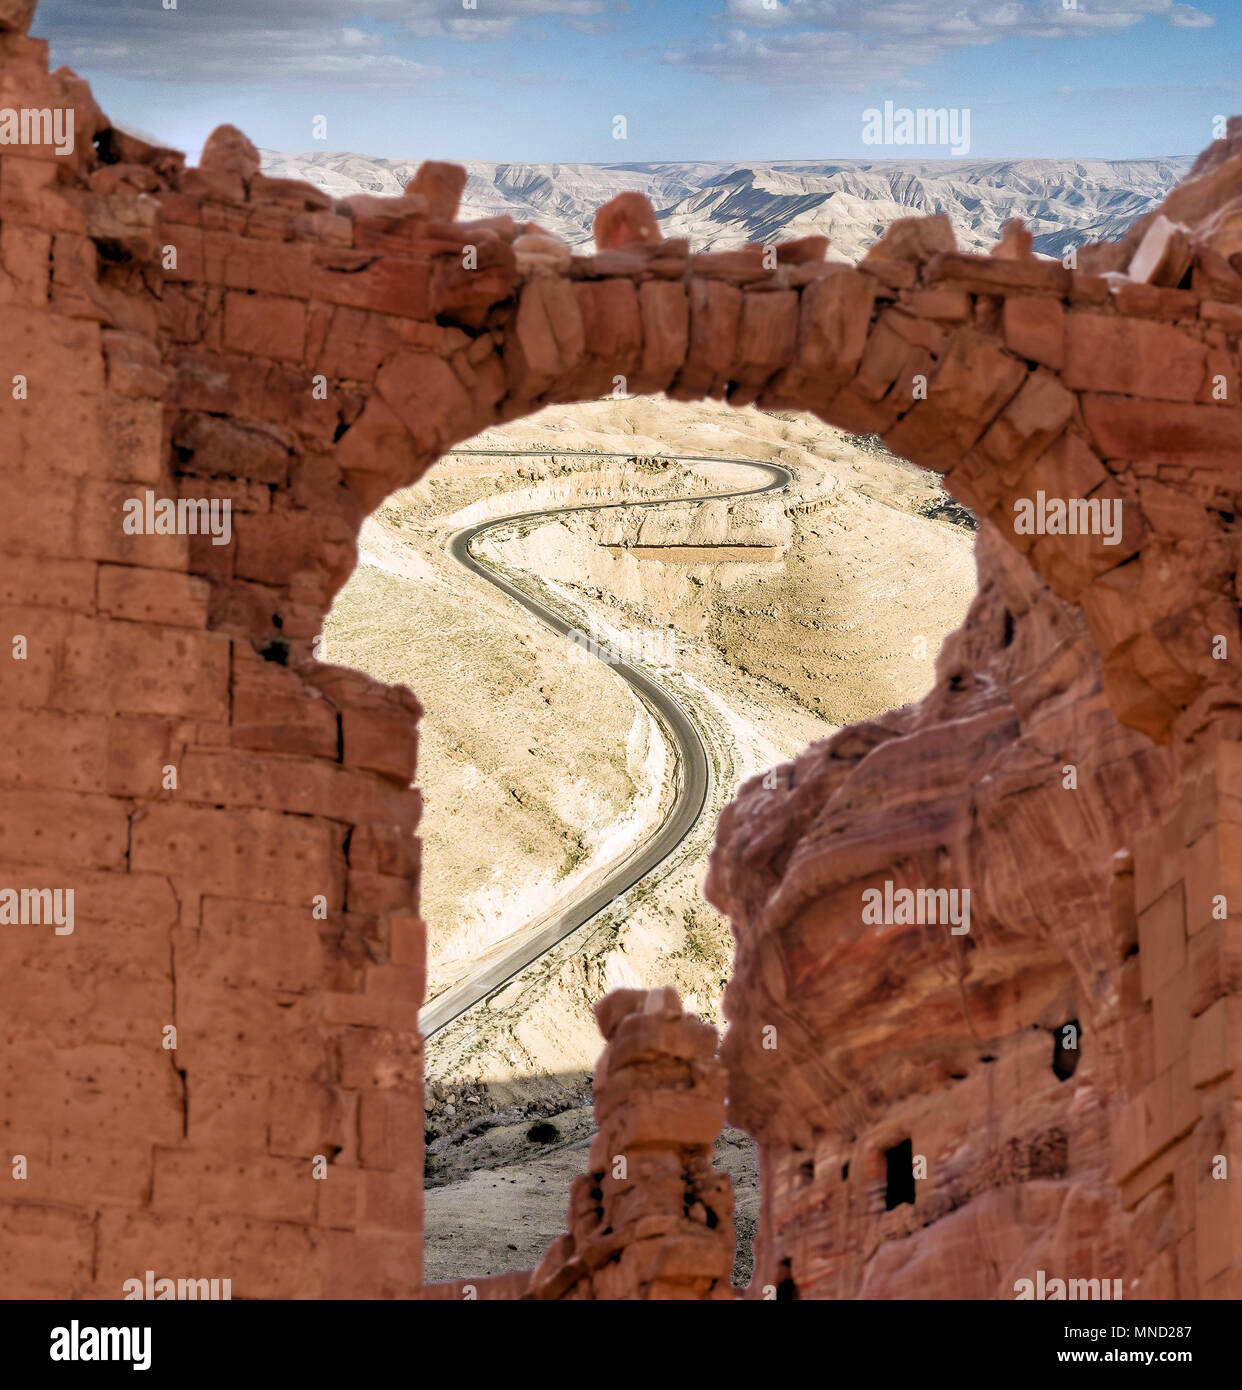 View through a ruin to a steep road with serpentines in the highlands of Jordan, composite photograph - Stock Image